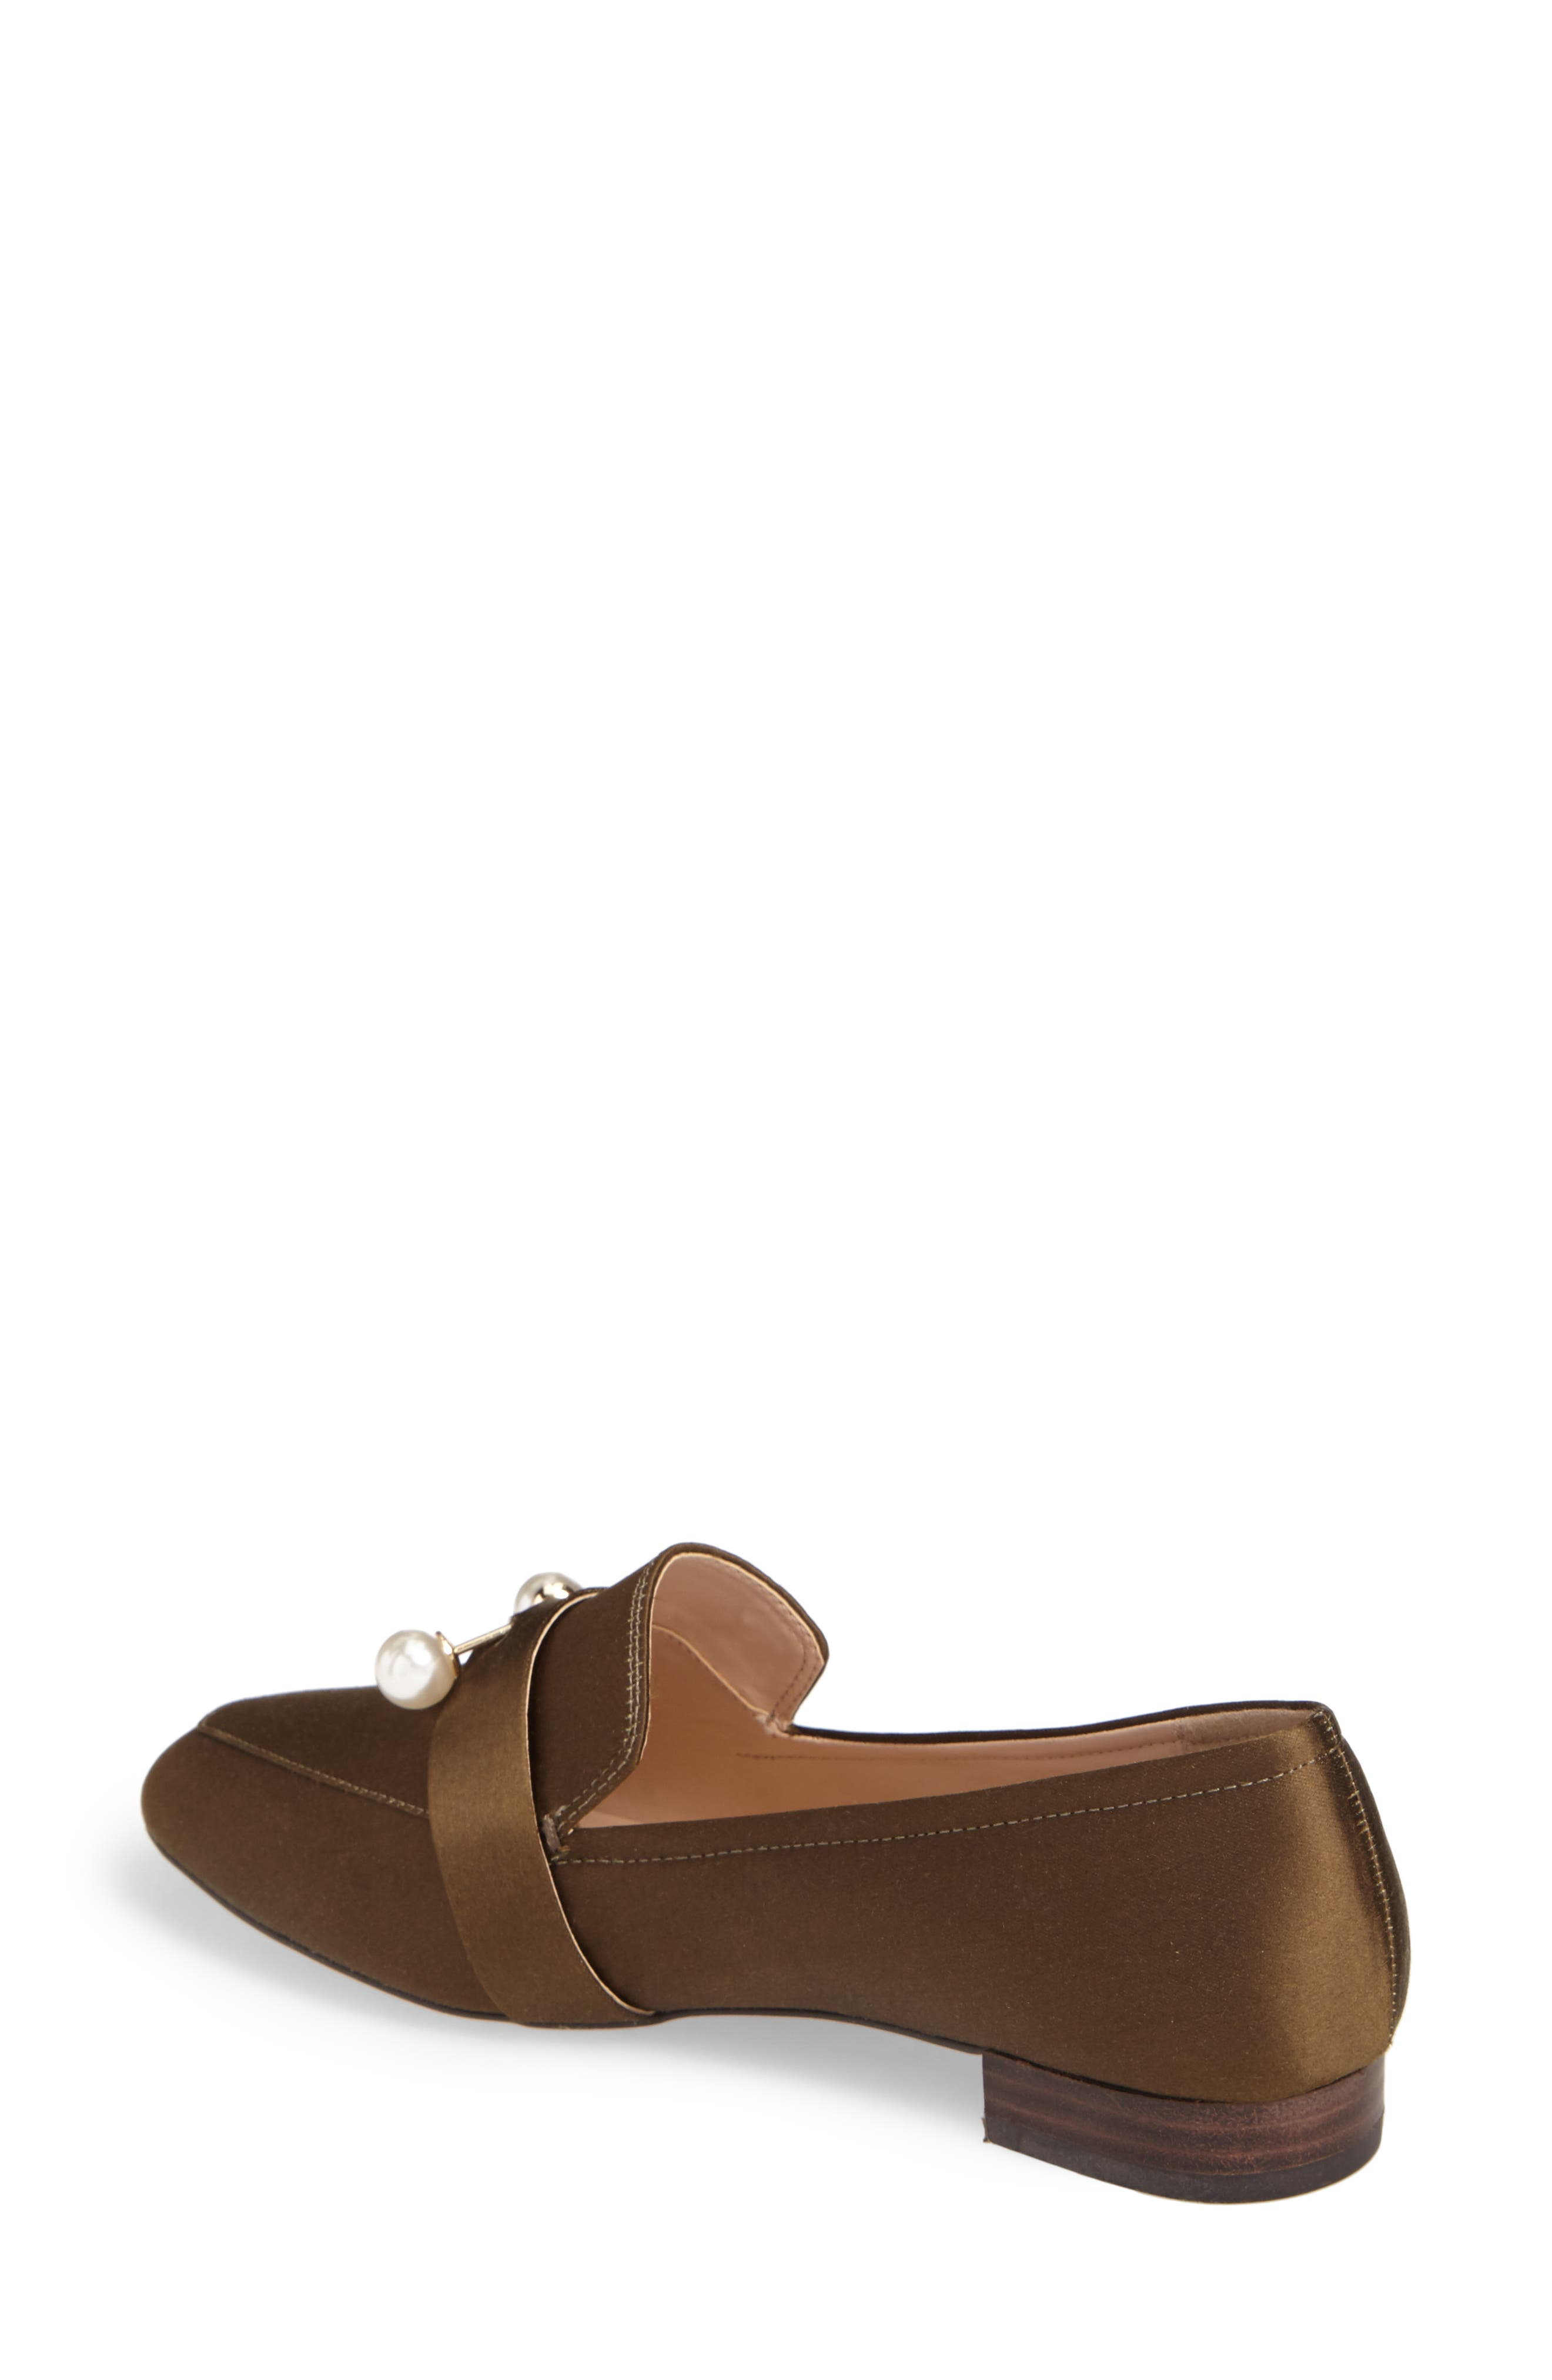 Caspar Loafer,                             Alternate thumbnail 6, color,